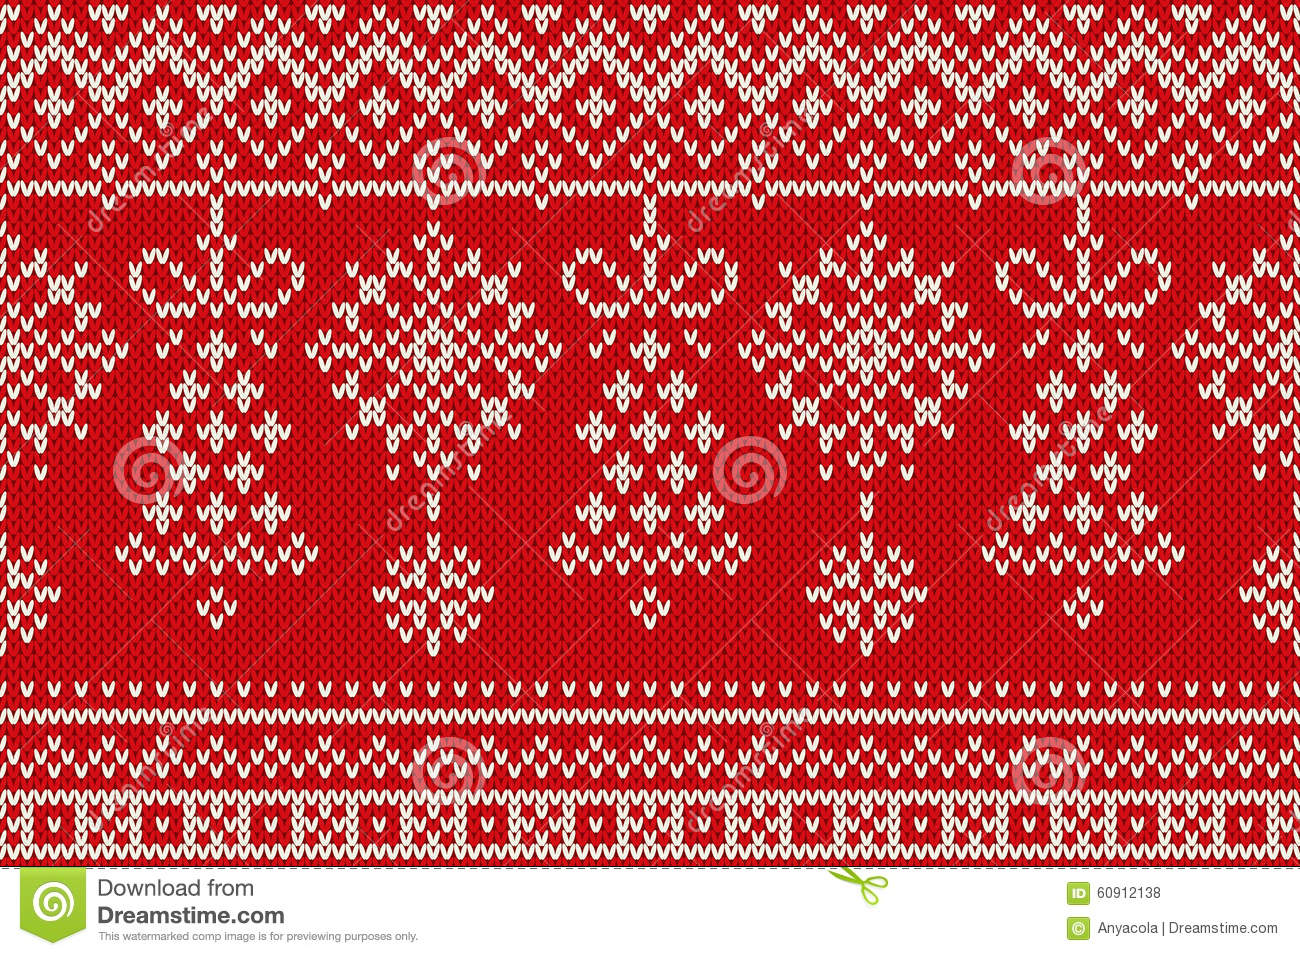 New Knitting Patterns 2017 : Winter Holiday Seamless Knitting Pattern. Christmas And New Year Backround St...